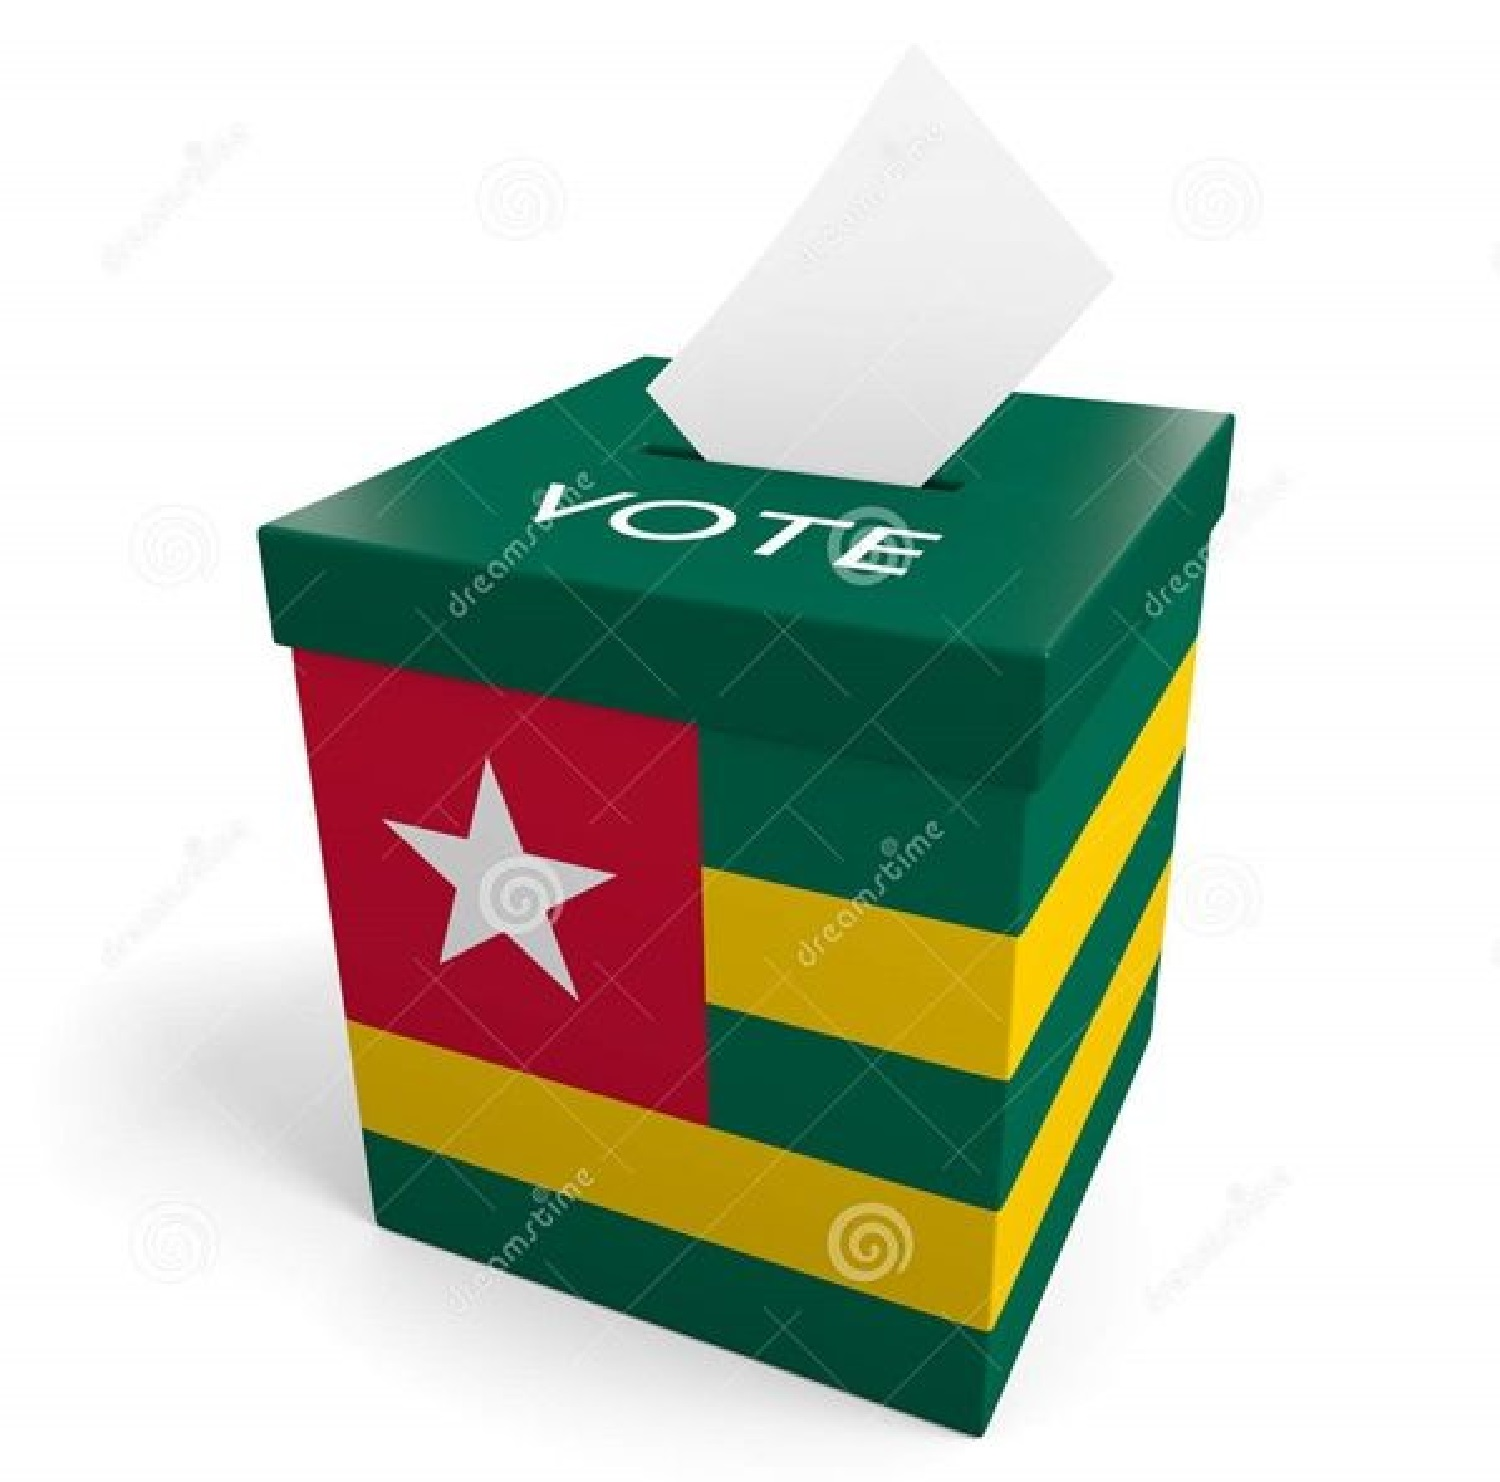 Togo: Historical calm, serene presidential elections campaign